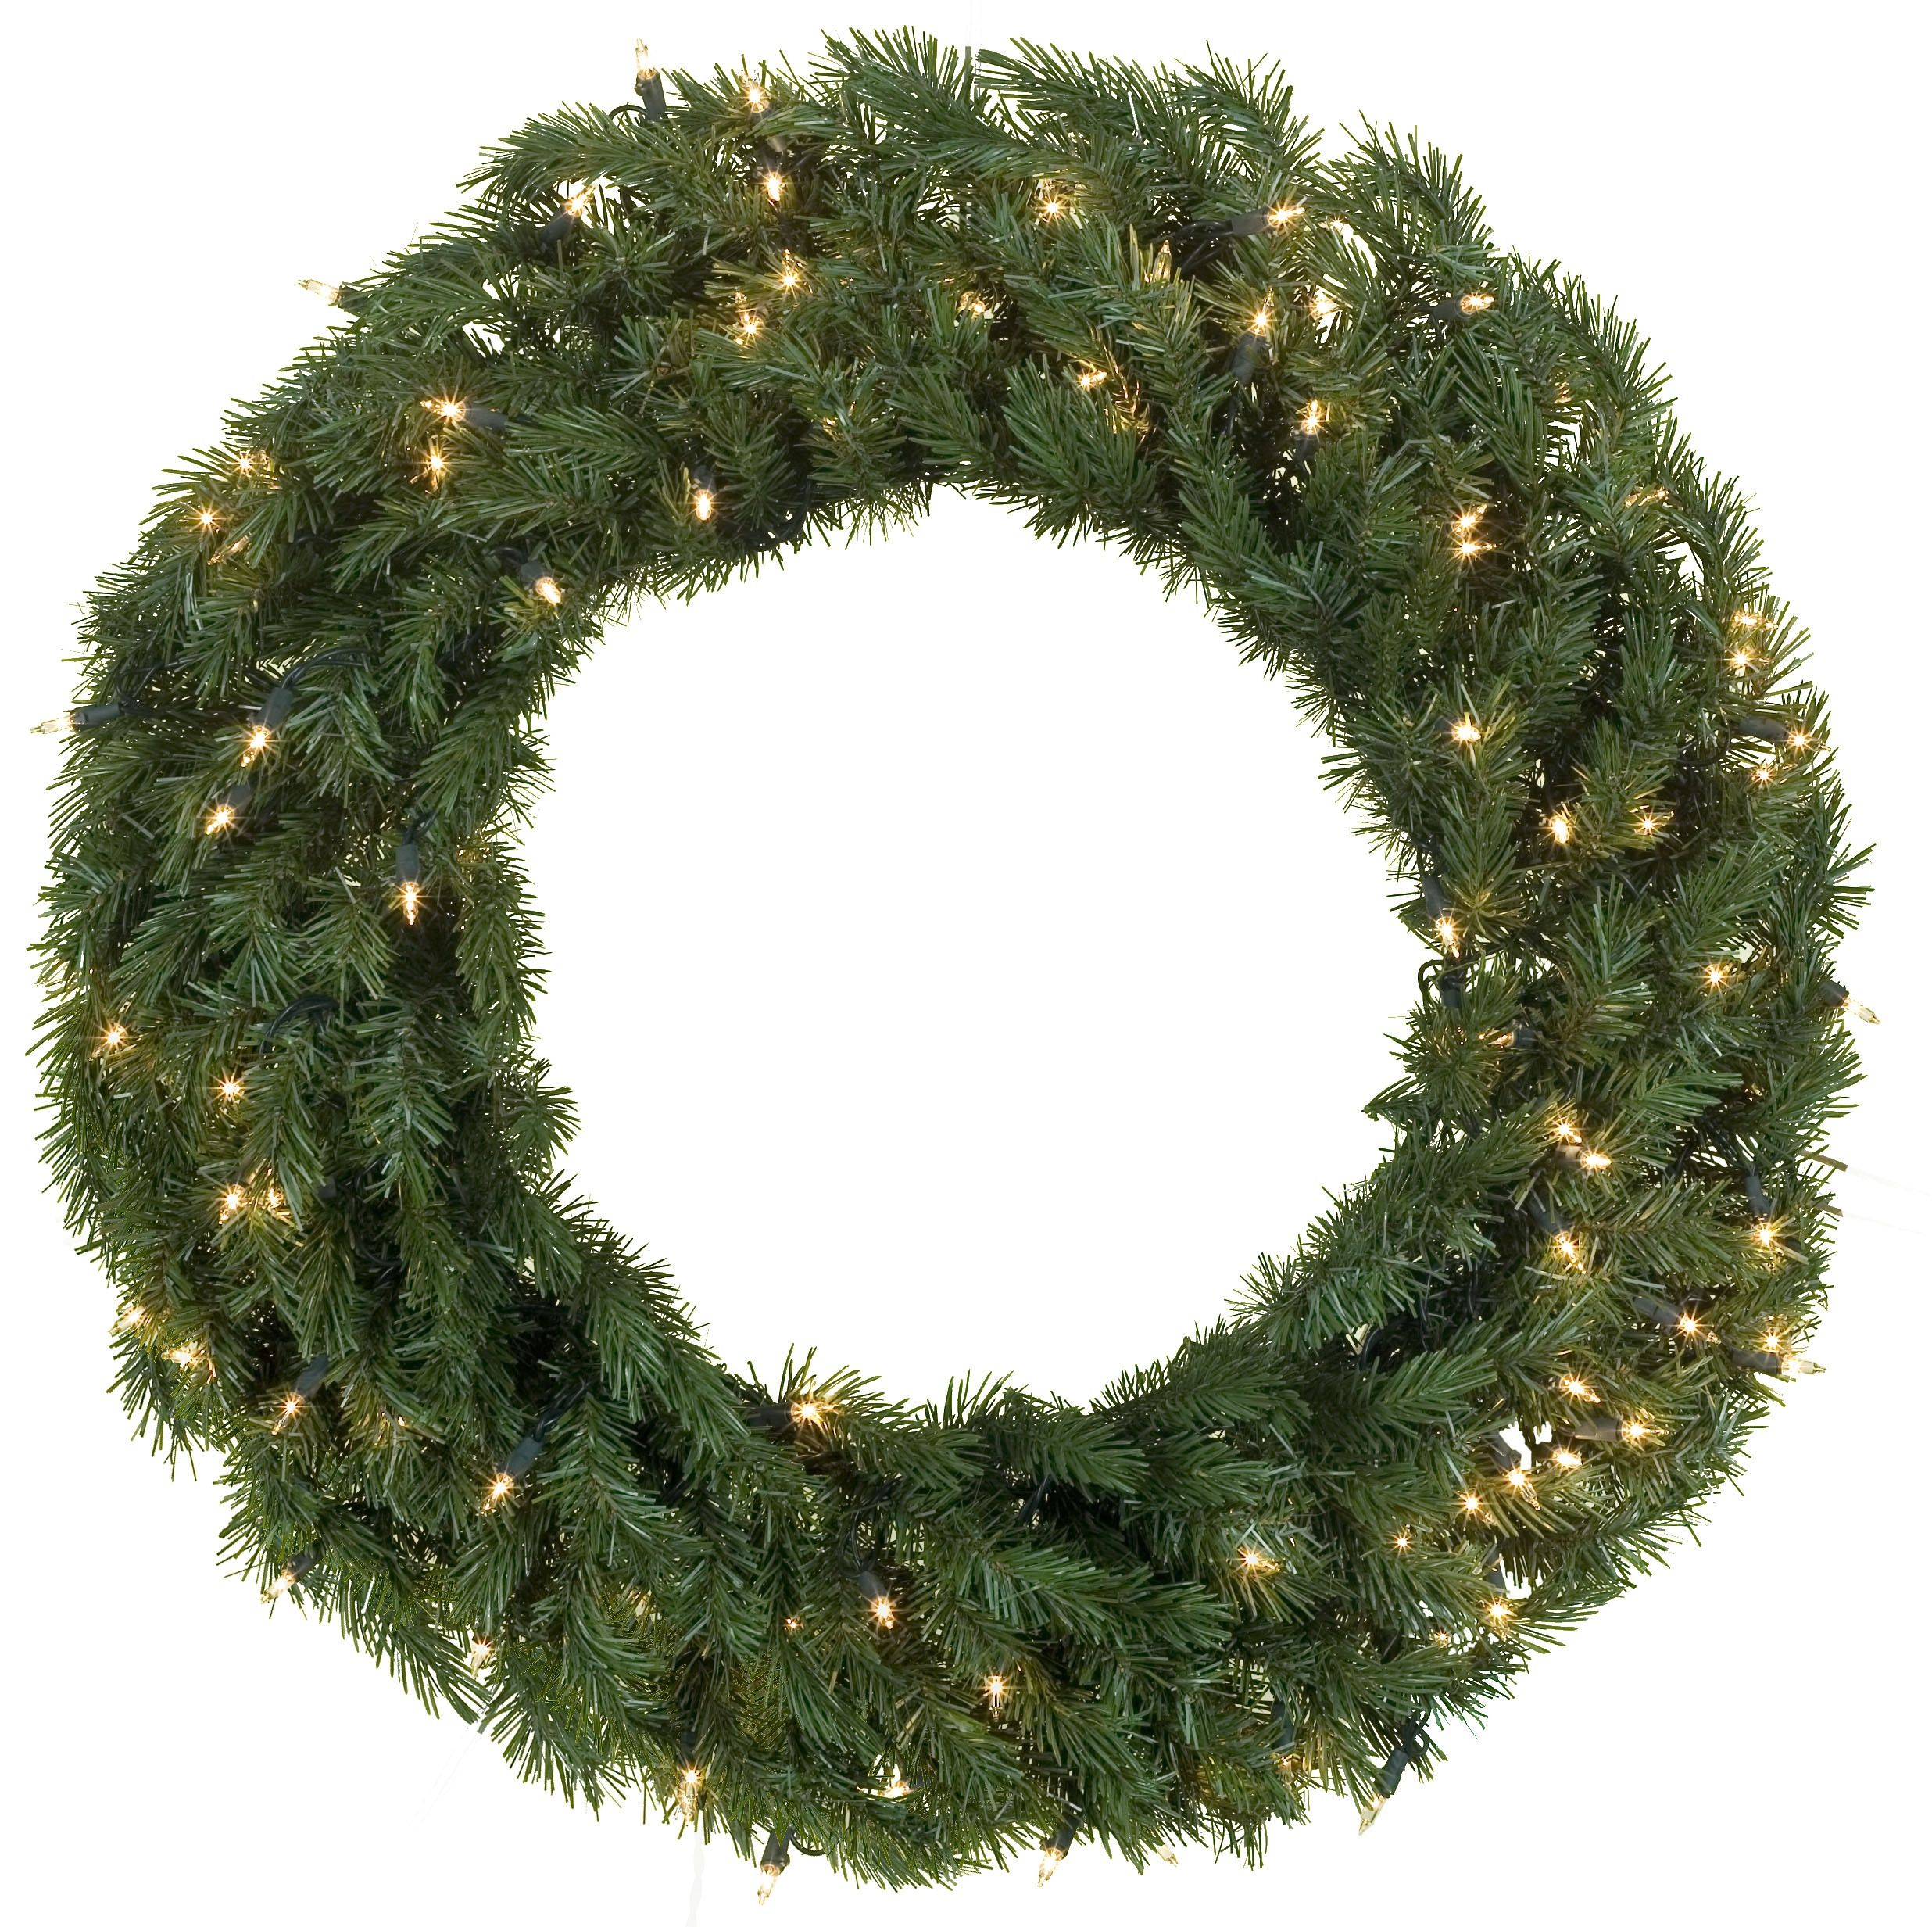 Balsam Fir Christmas Wreaths